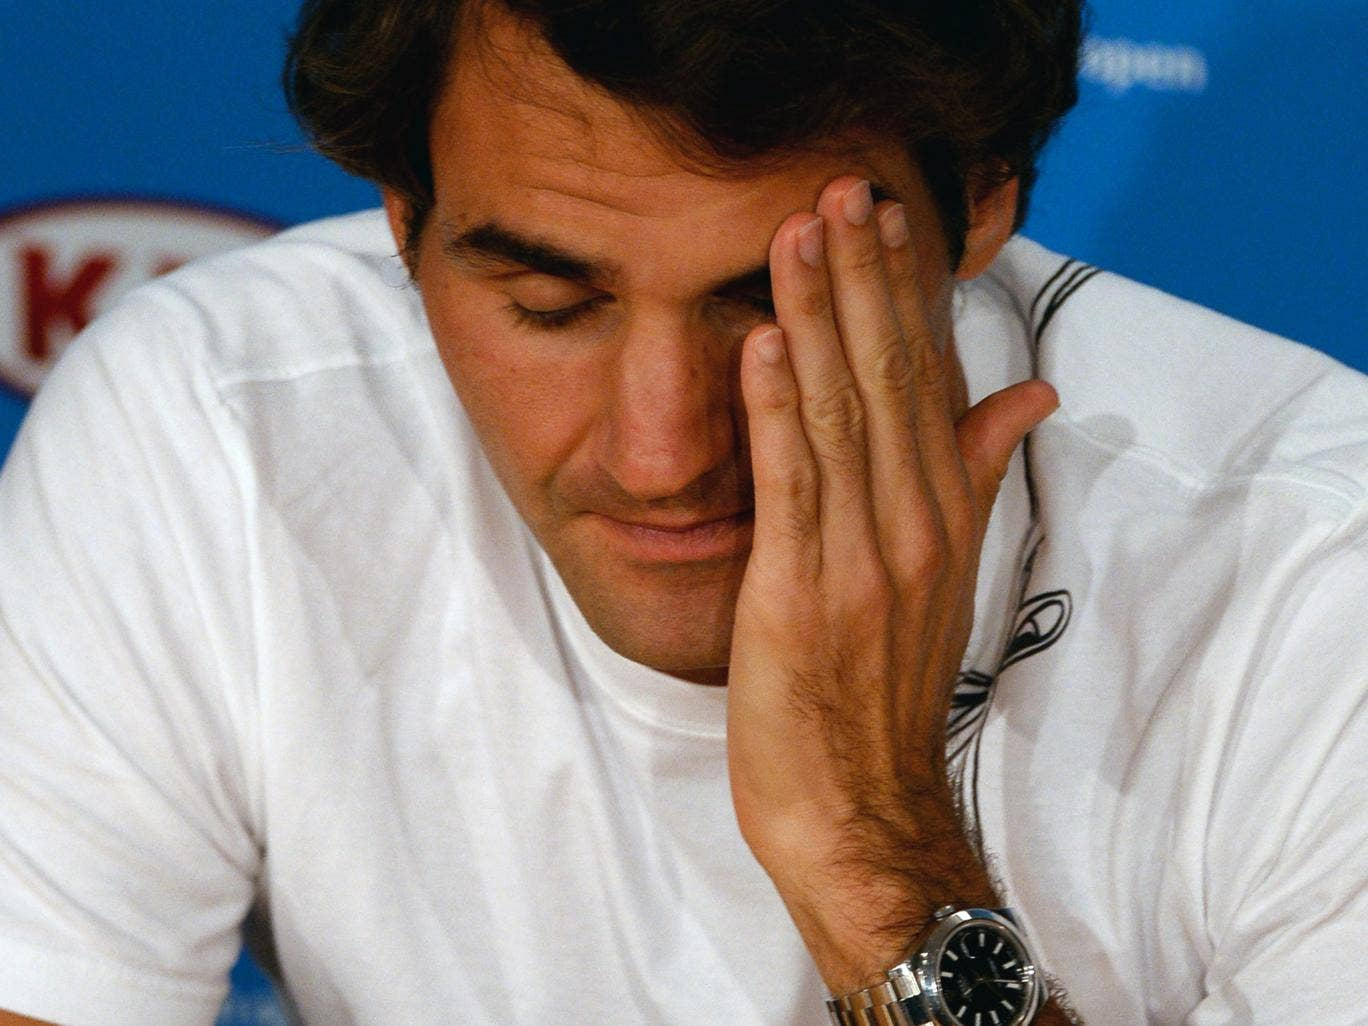 Roger Federer talks to the press following his semi-final defeat to Nadal